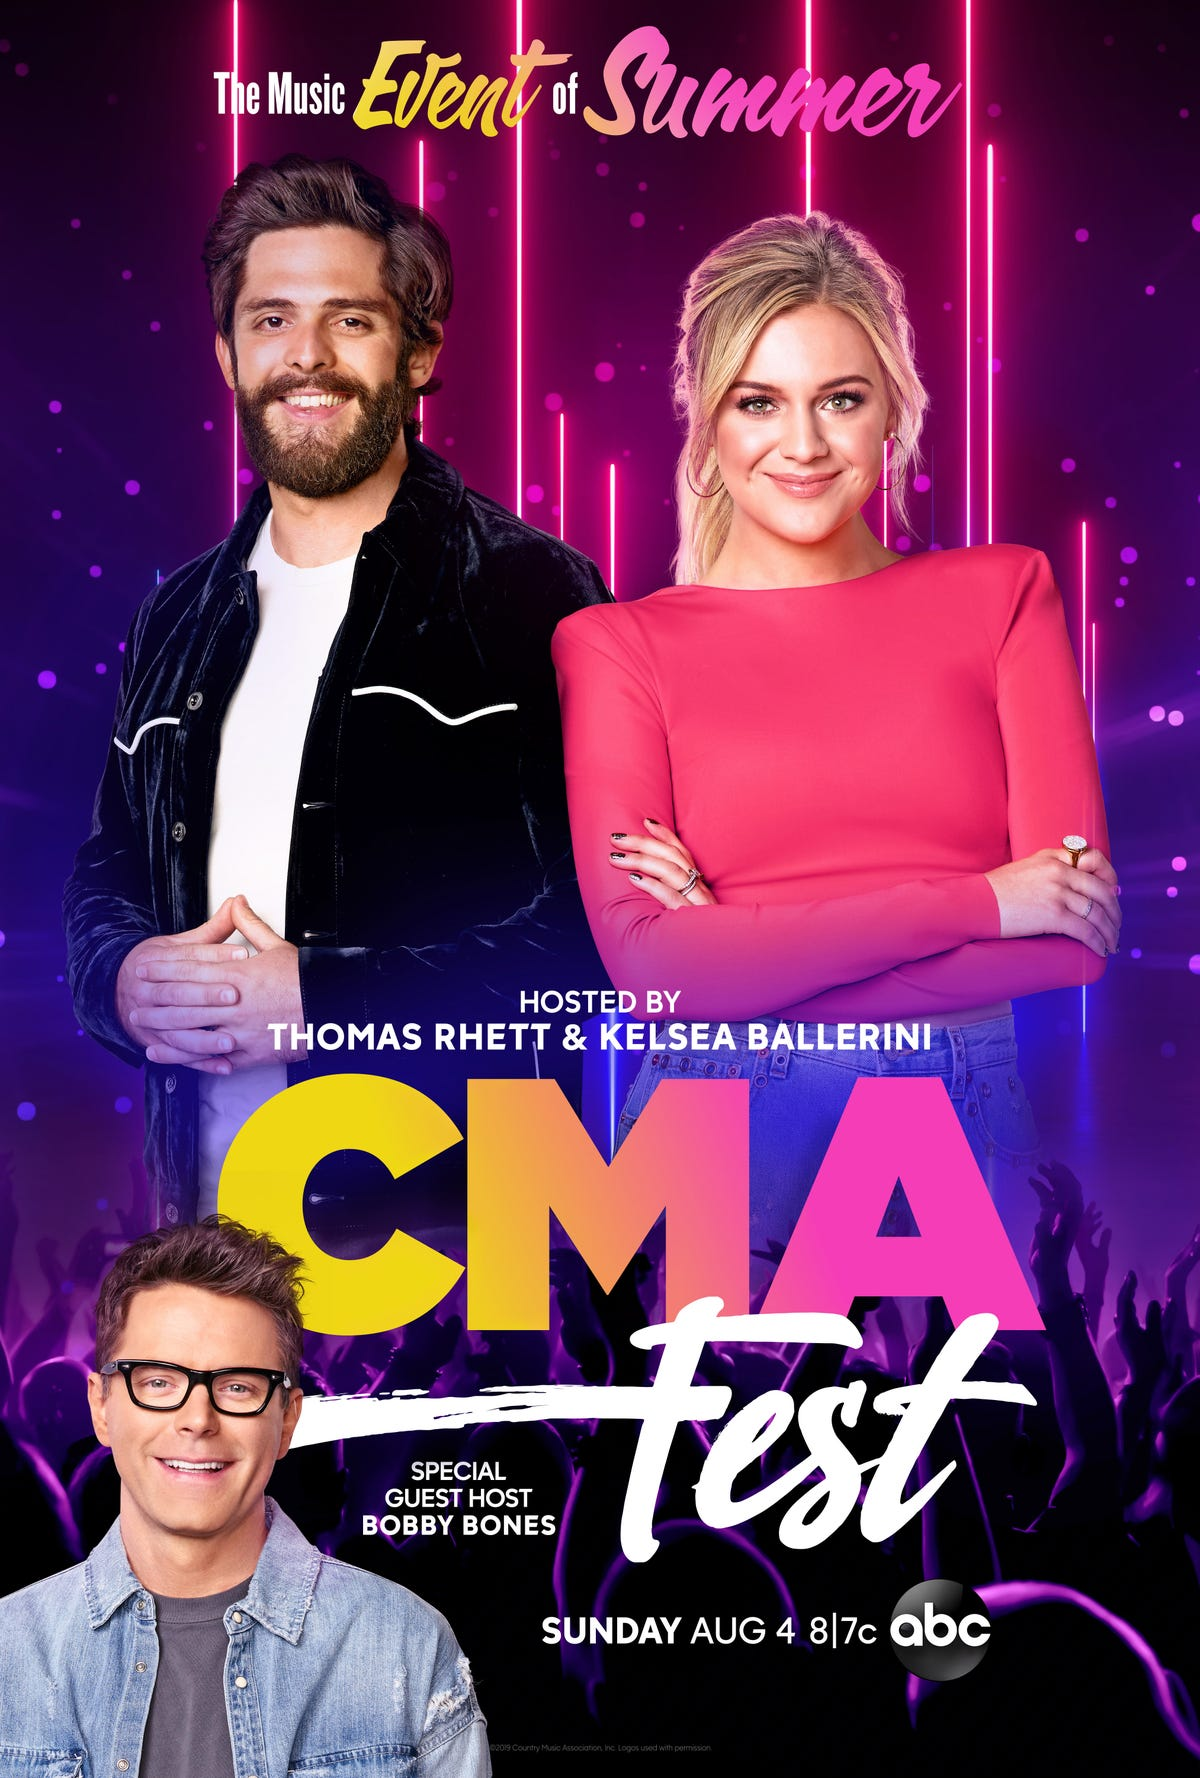 CMA Fest 2019 Special coming to ABC: TV, Streaming and how